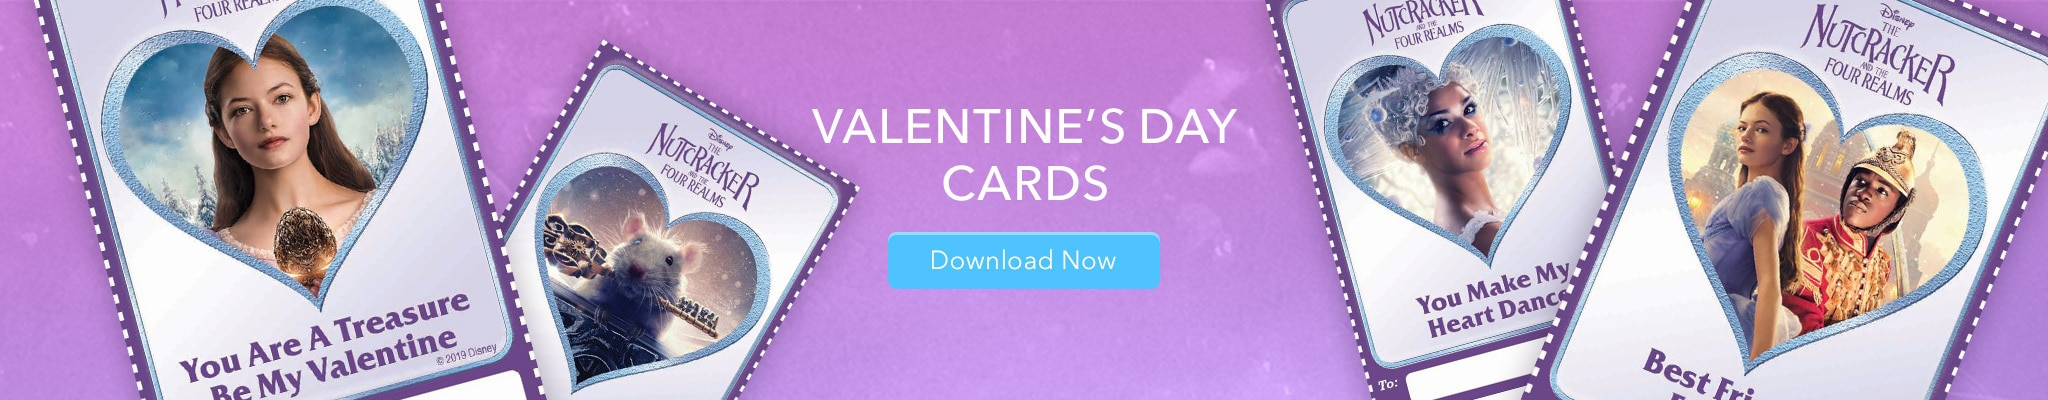 Valentine's Day Cards - Download Now